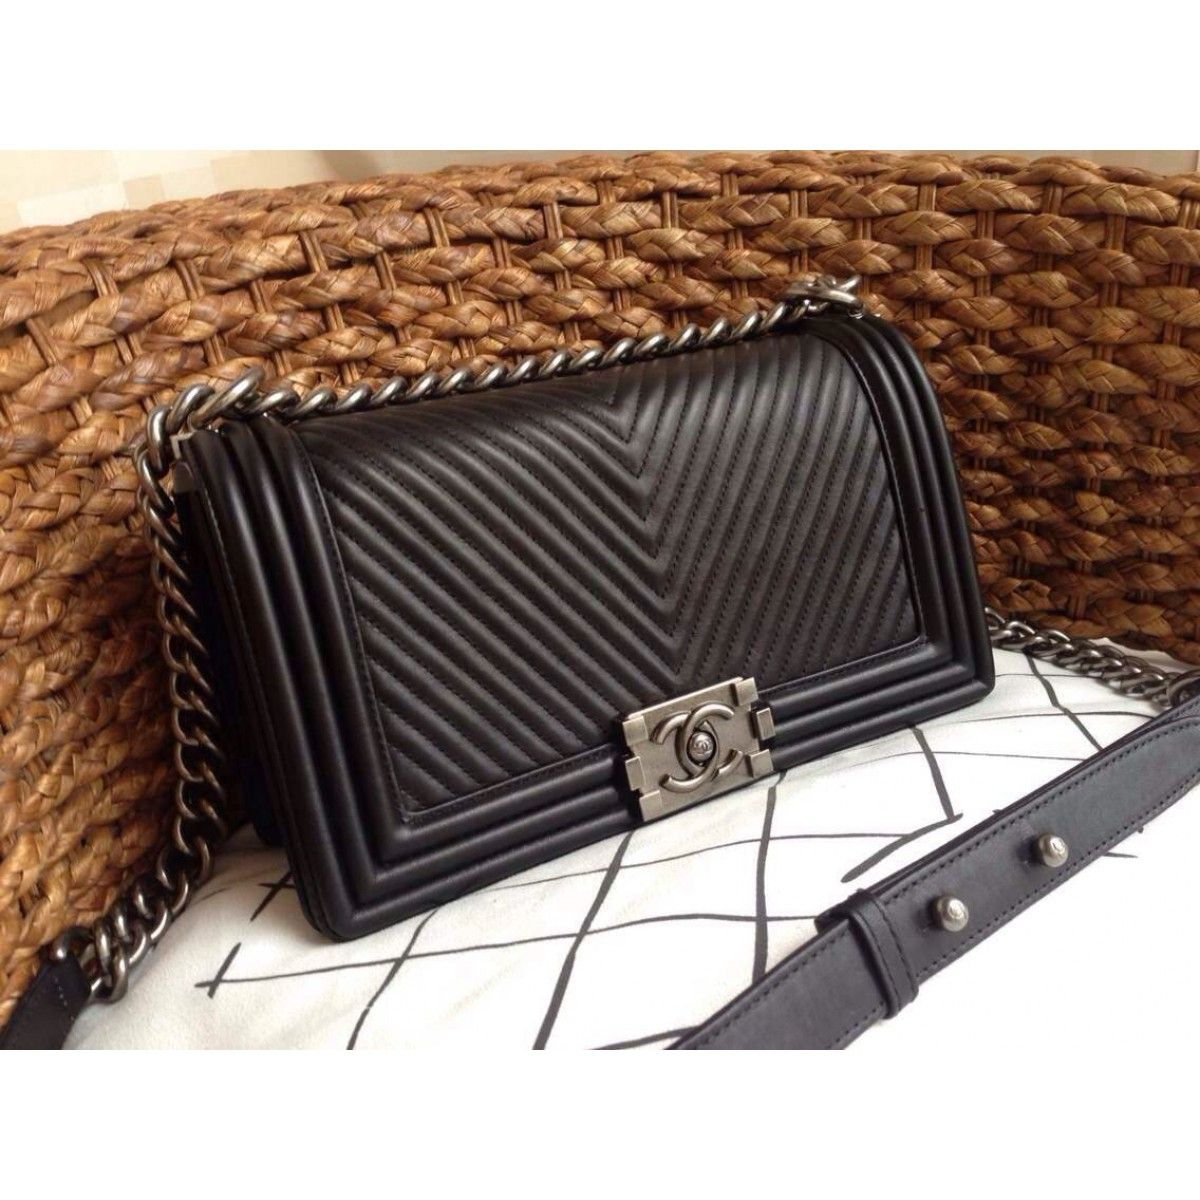 0134ef1b2508 Chanel Micro Chevron Boy Bag - Black